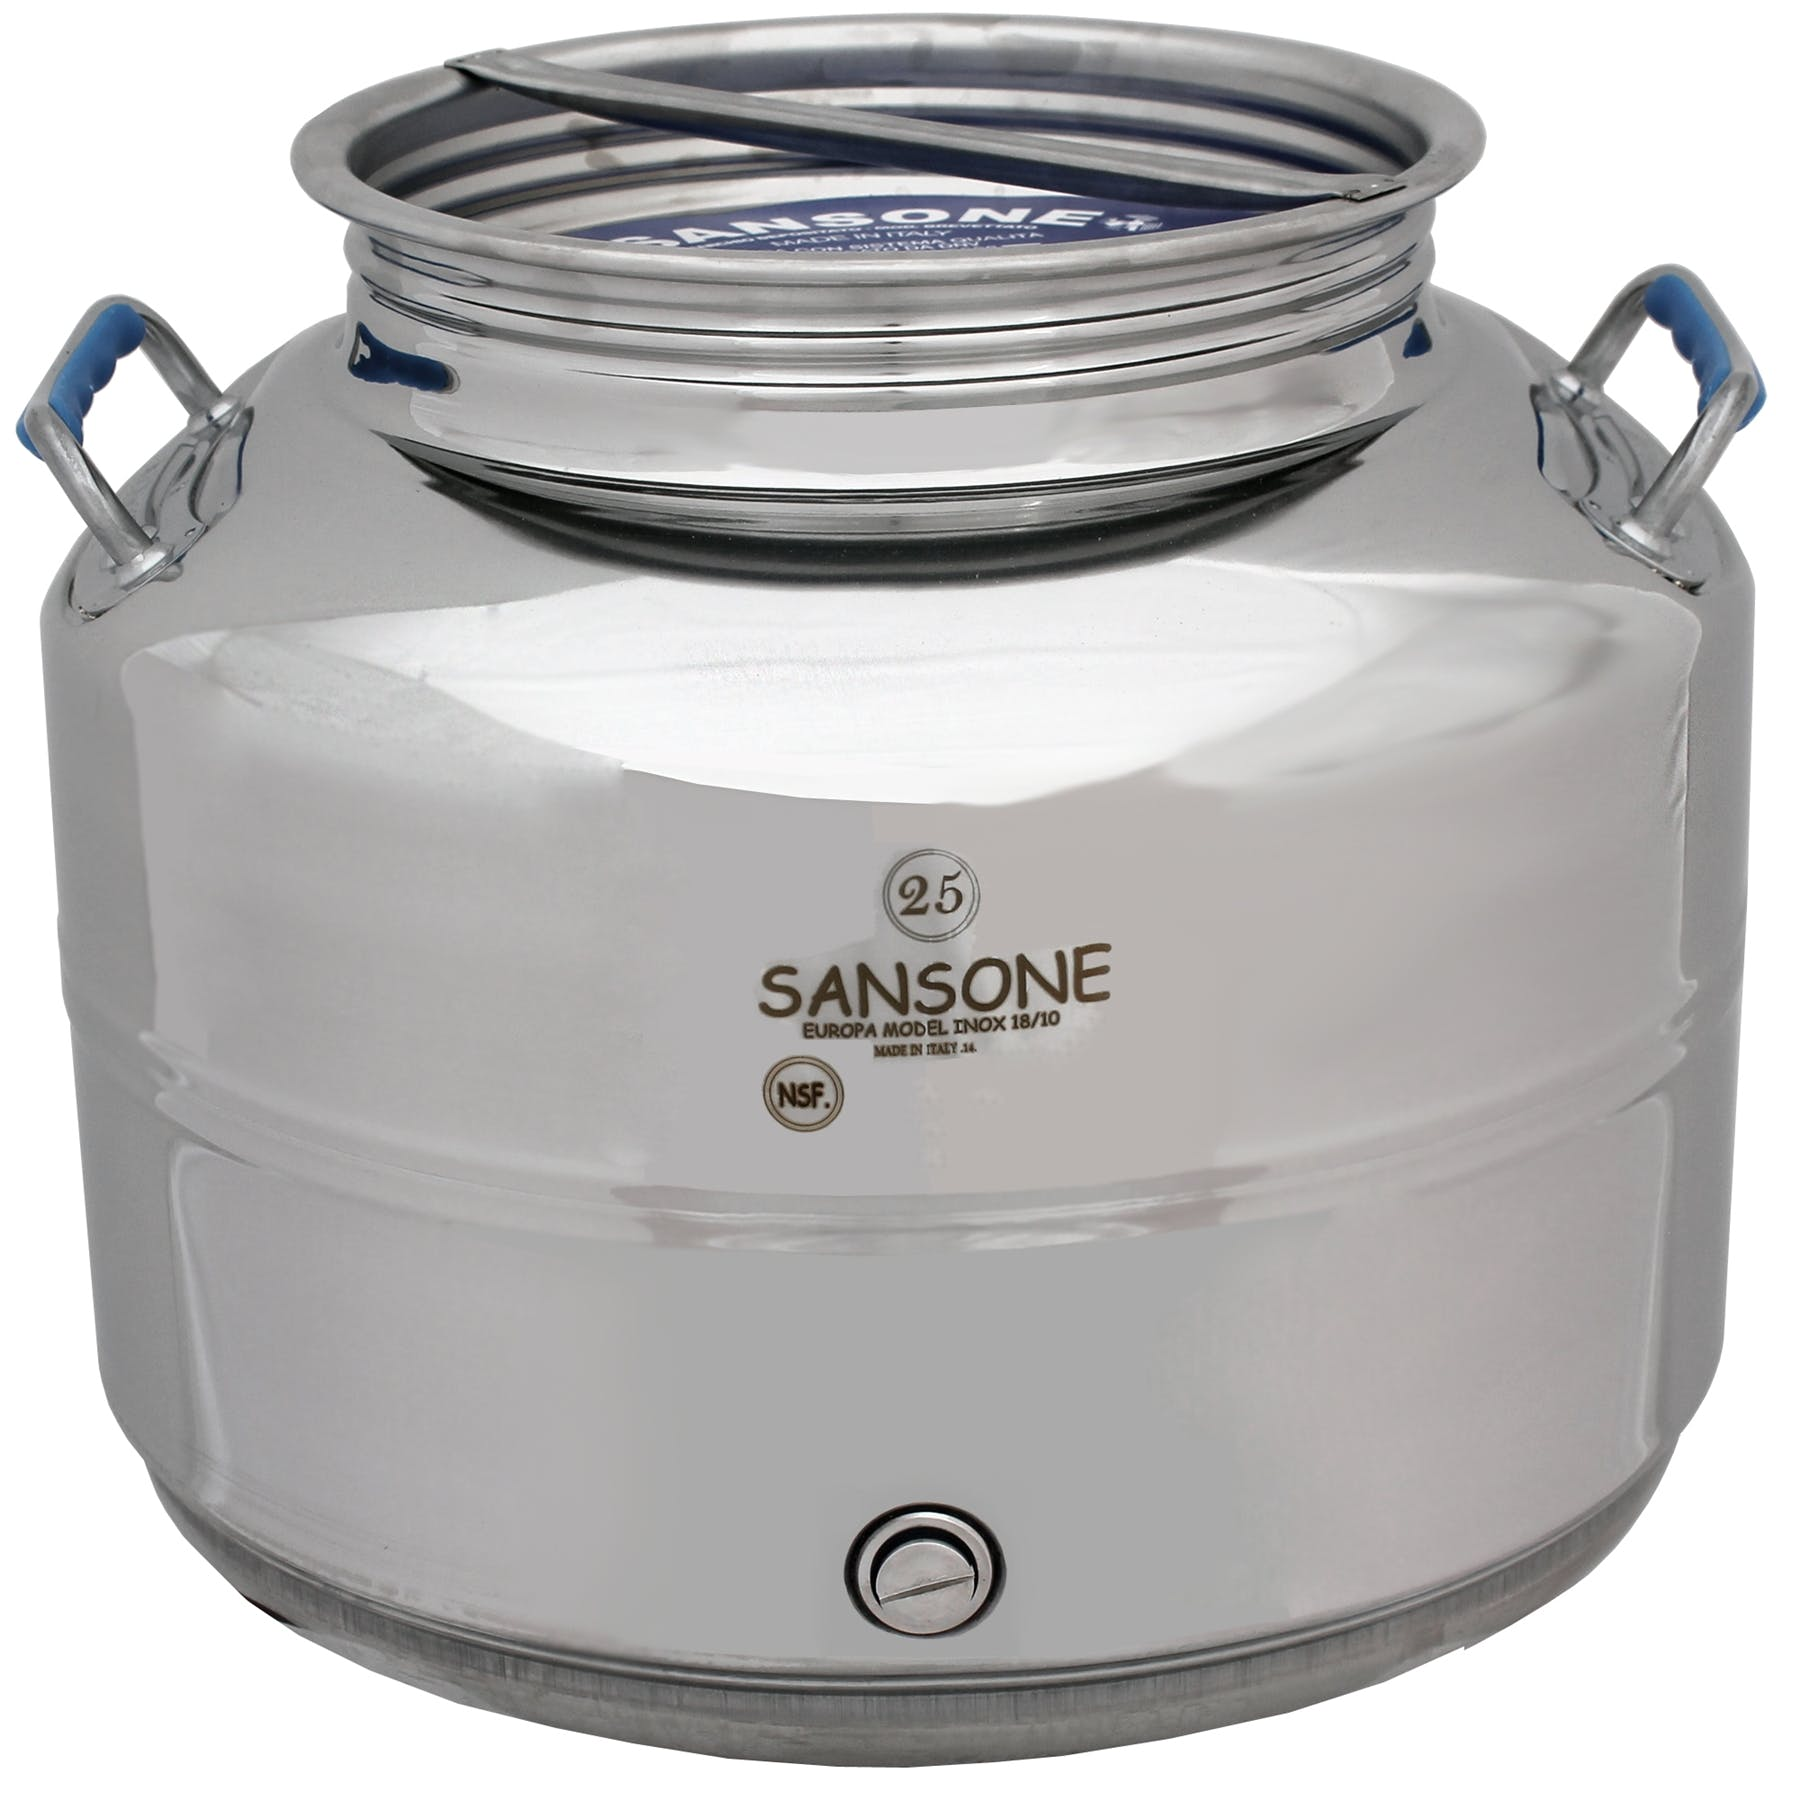 Italian Made Stainless Steel National Sanitary Foundation (NSF) Certified Fusti-25 Liters - sold by M5 Corporation